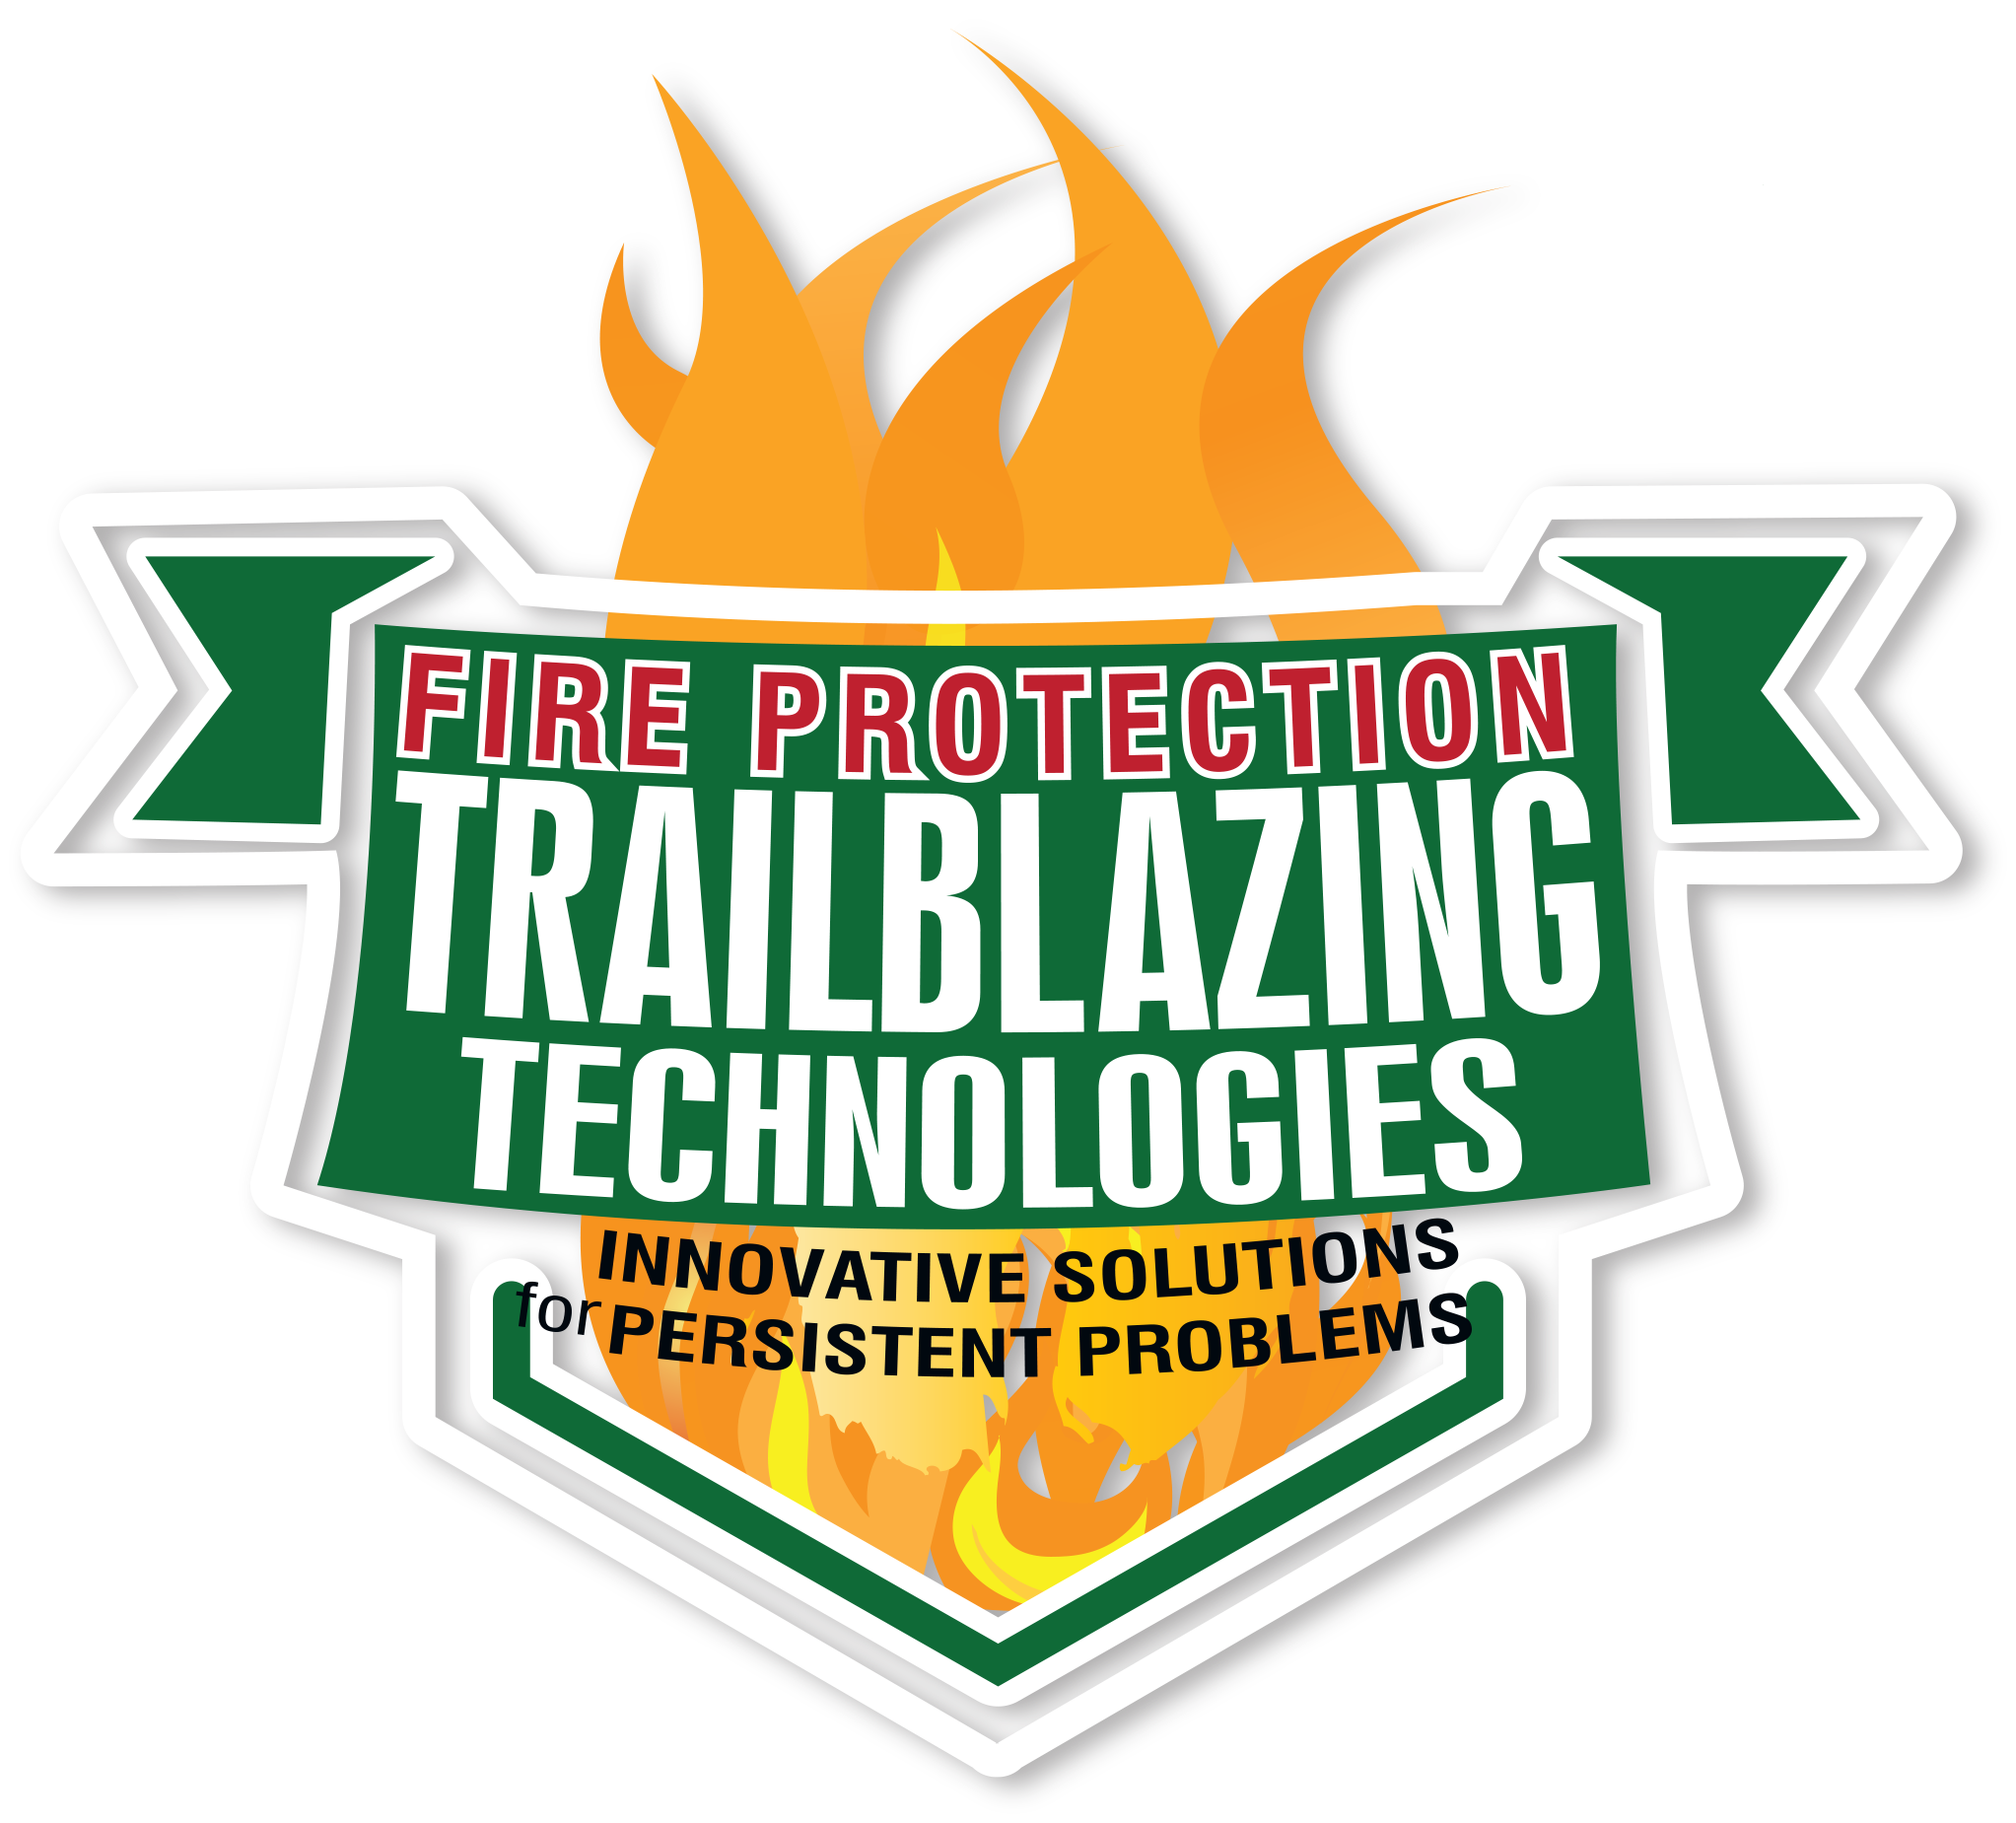 Trailblazing Technologies in Fire Protection